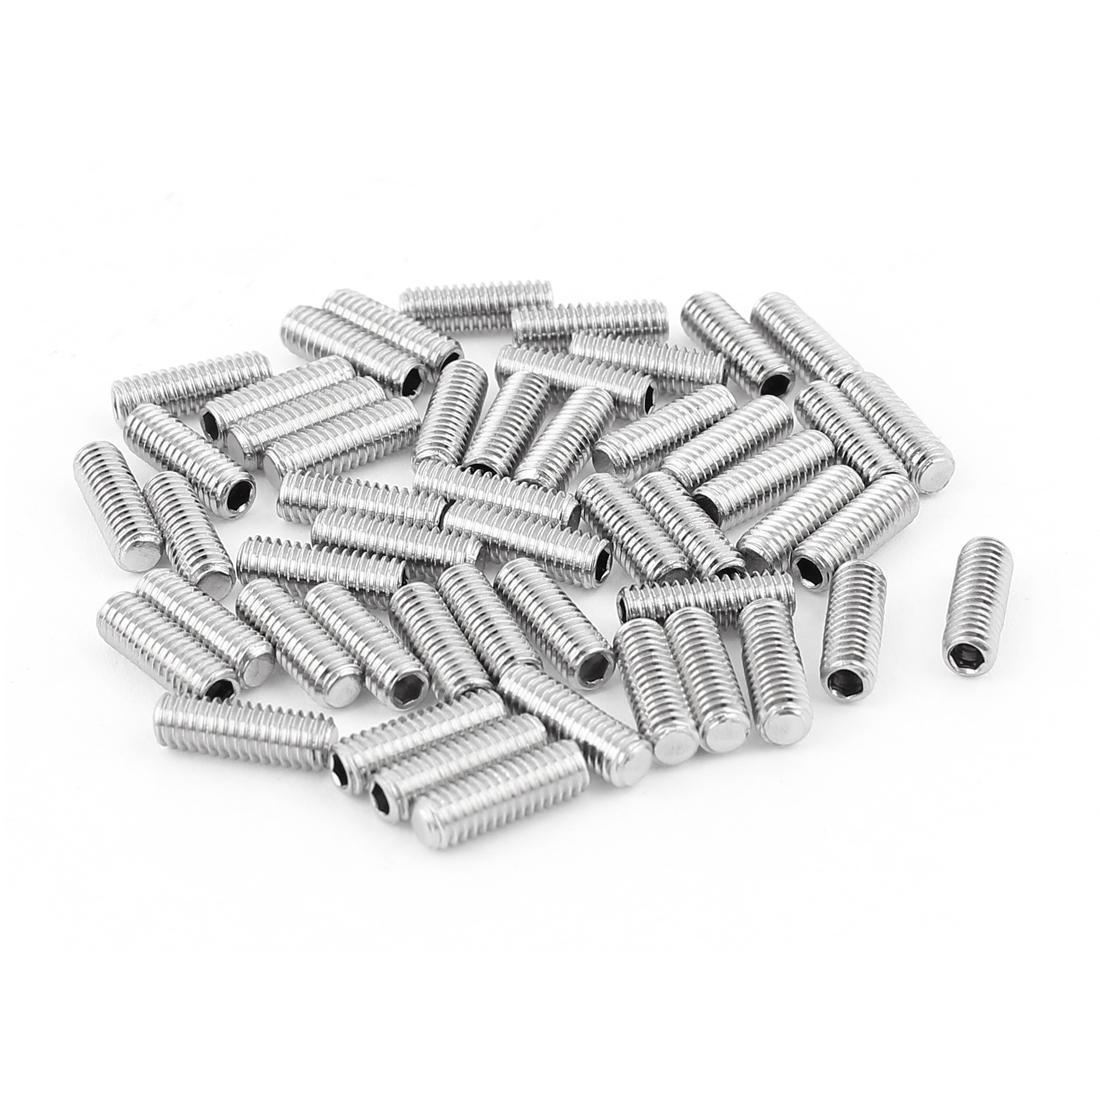 4mm x 12mm Stainless Steel Hexagon Socket Head Set Cup Point Grub Screws 50pcs